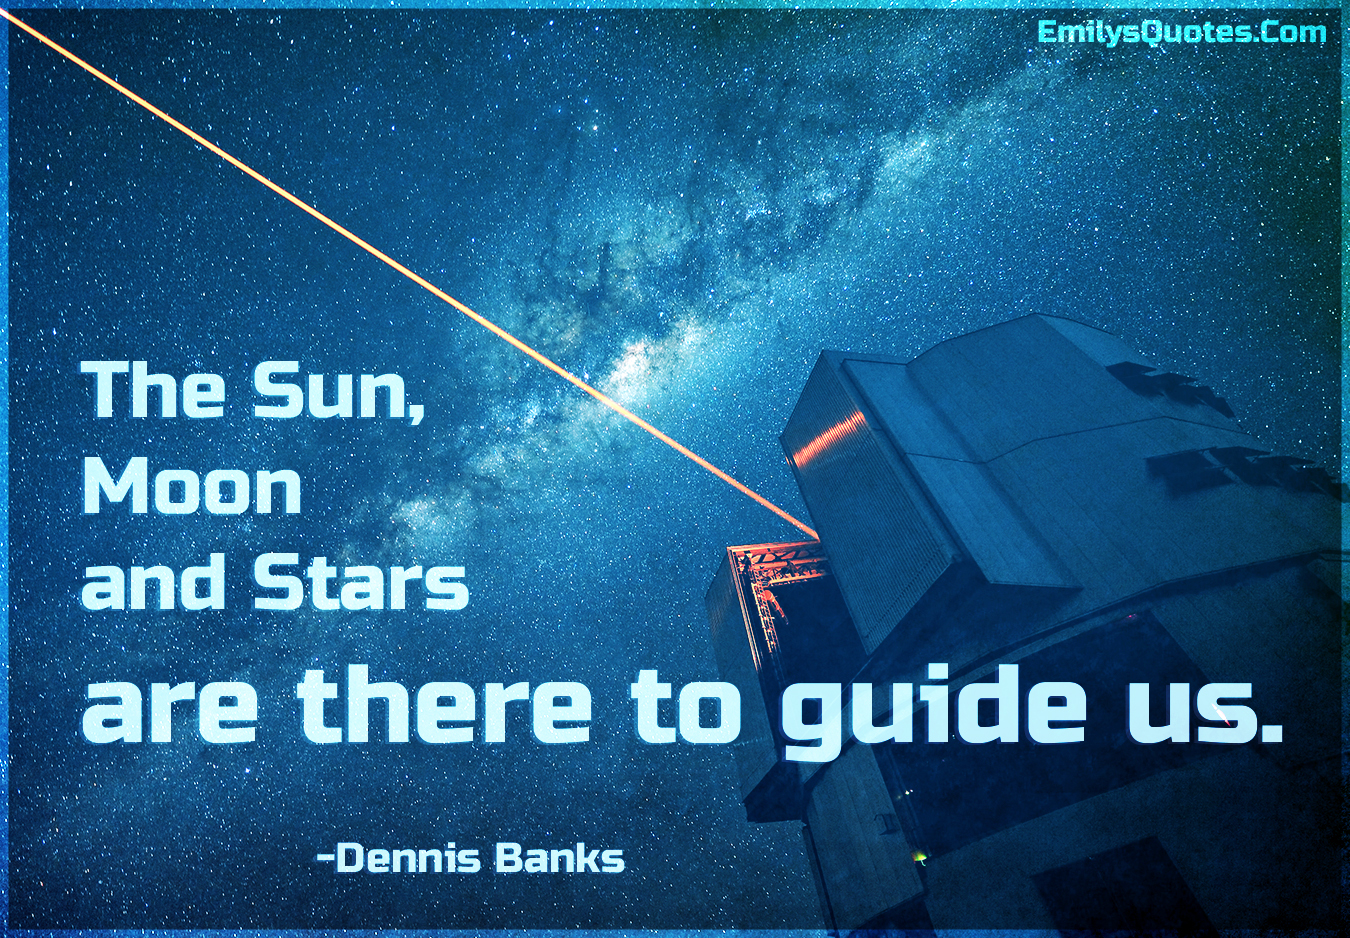 Moon And Stars Quotes: The Sun, Moon And Stars Are There To Guide Us